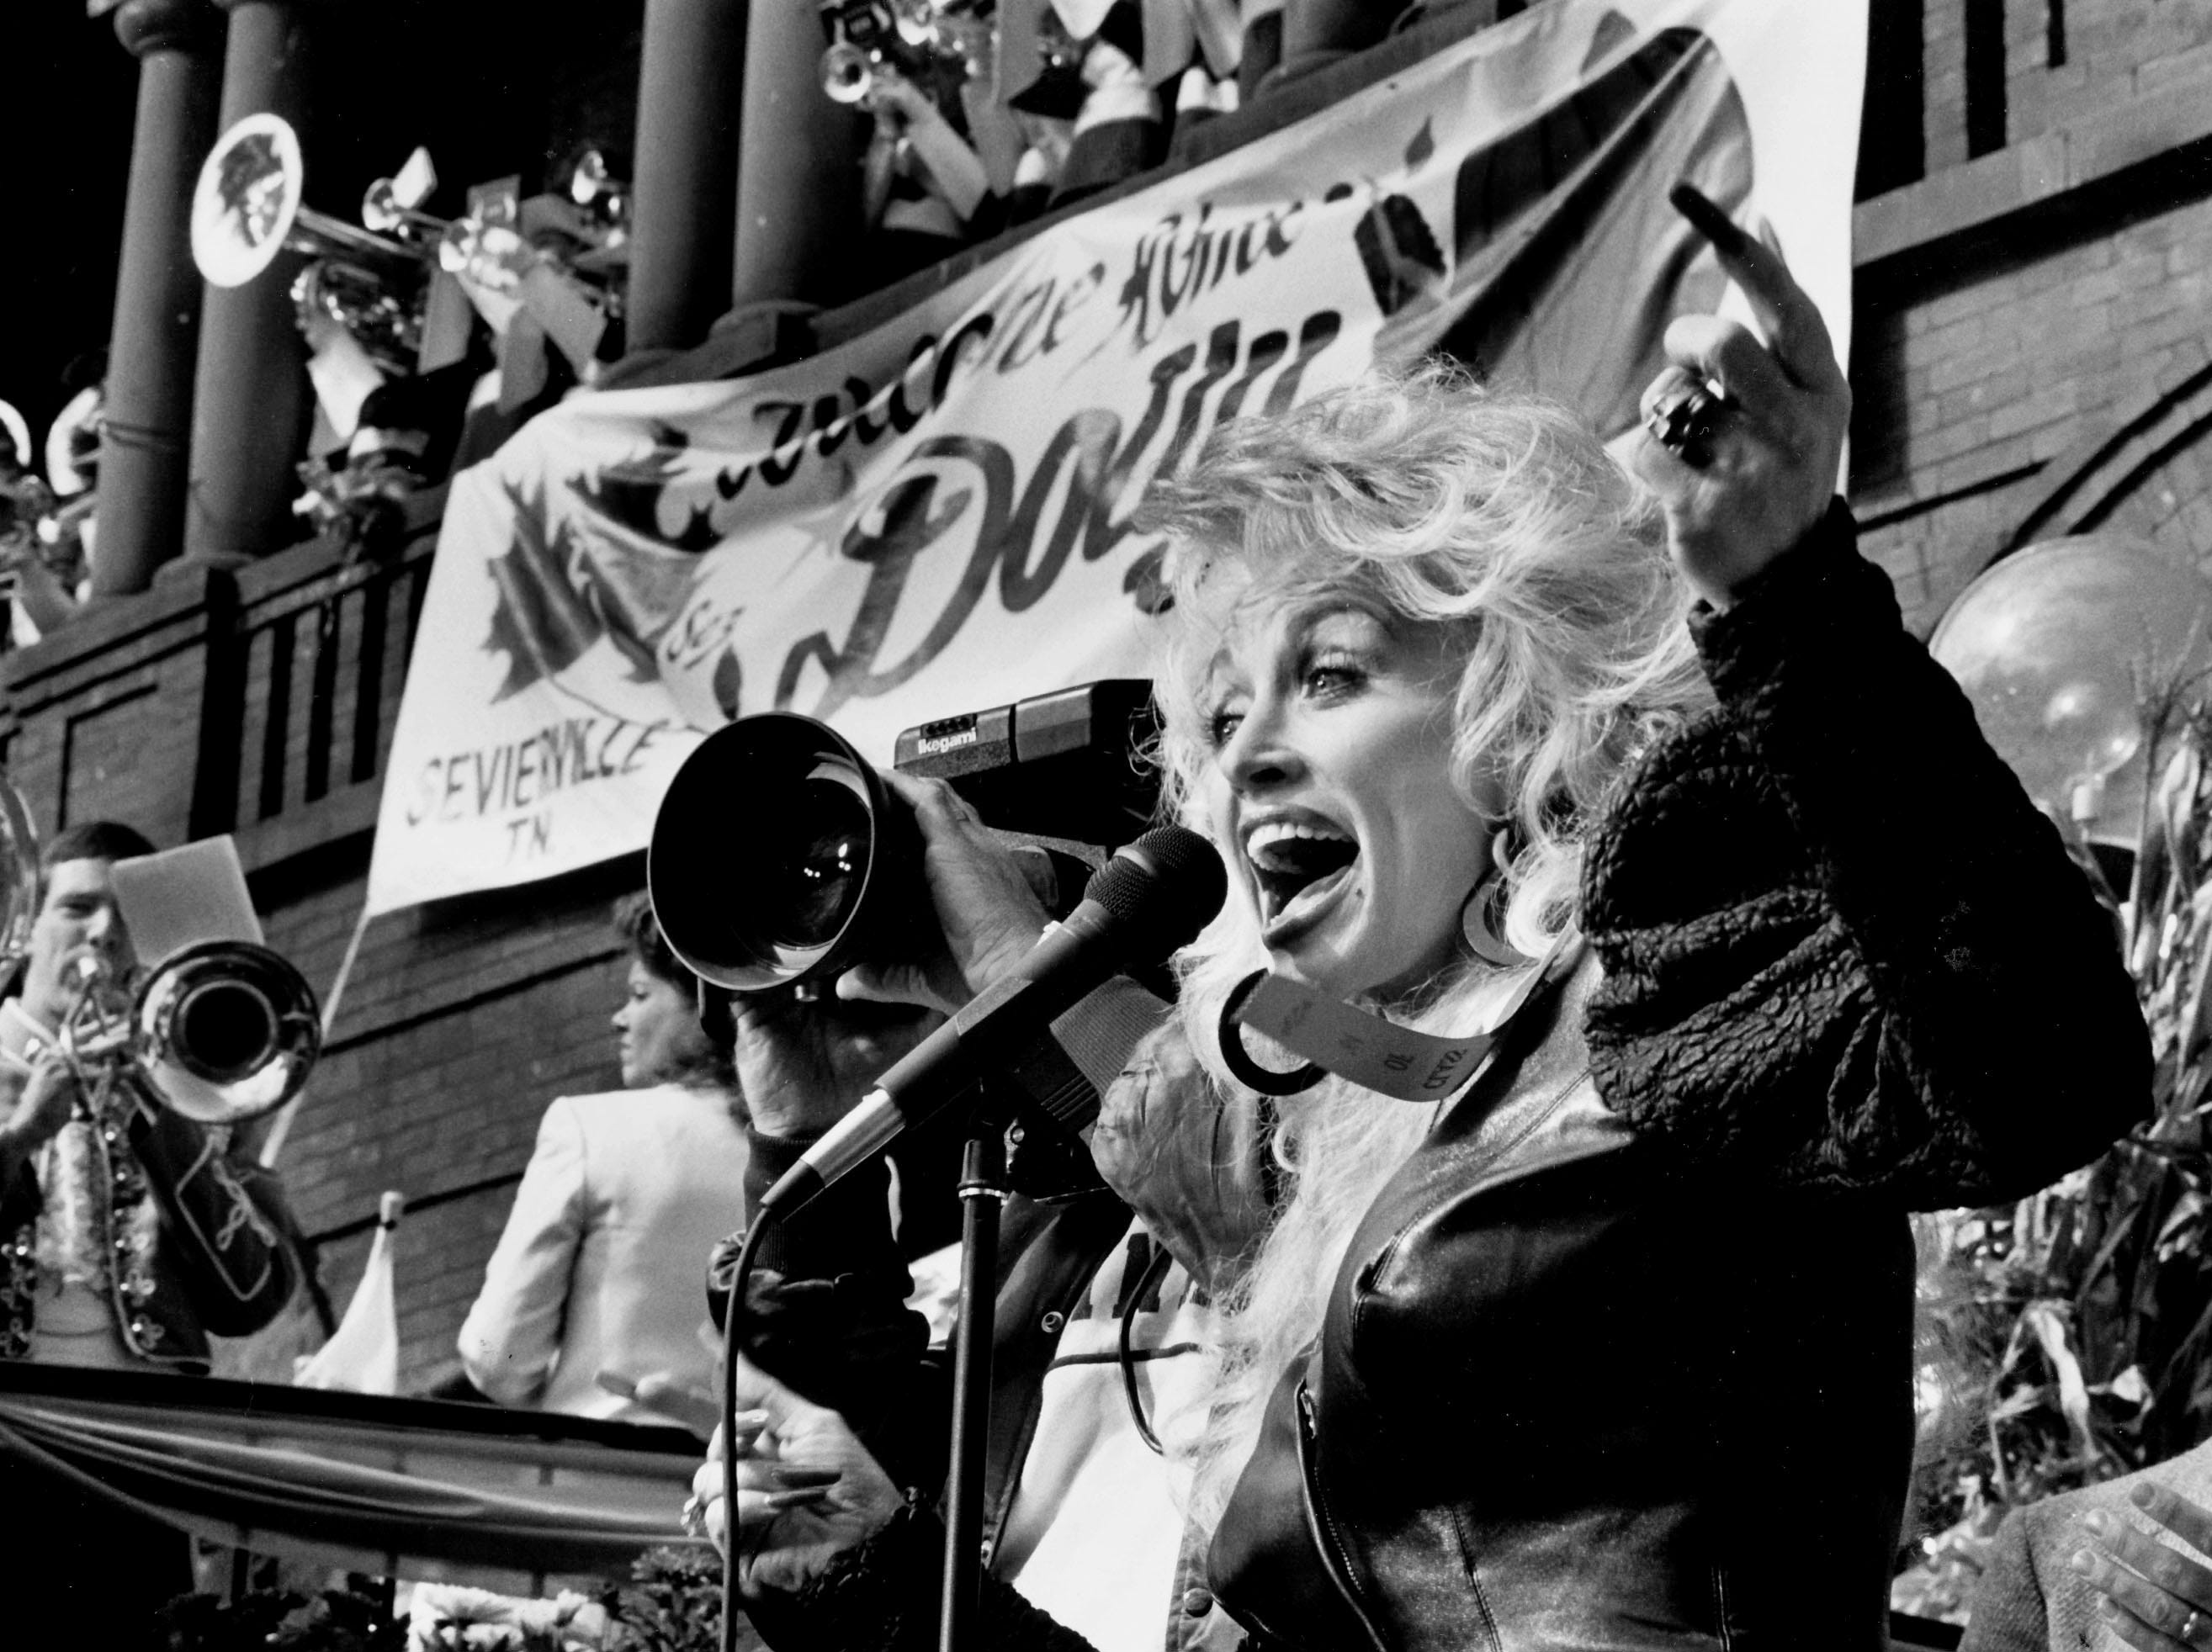 Dolly Parton cheers the crowd during a TV shoot on October 7, 1987 outside the Sevierville Courthouse.